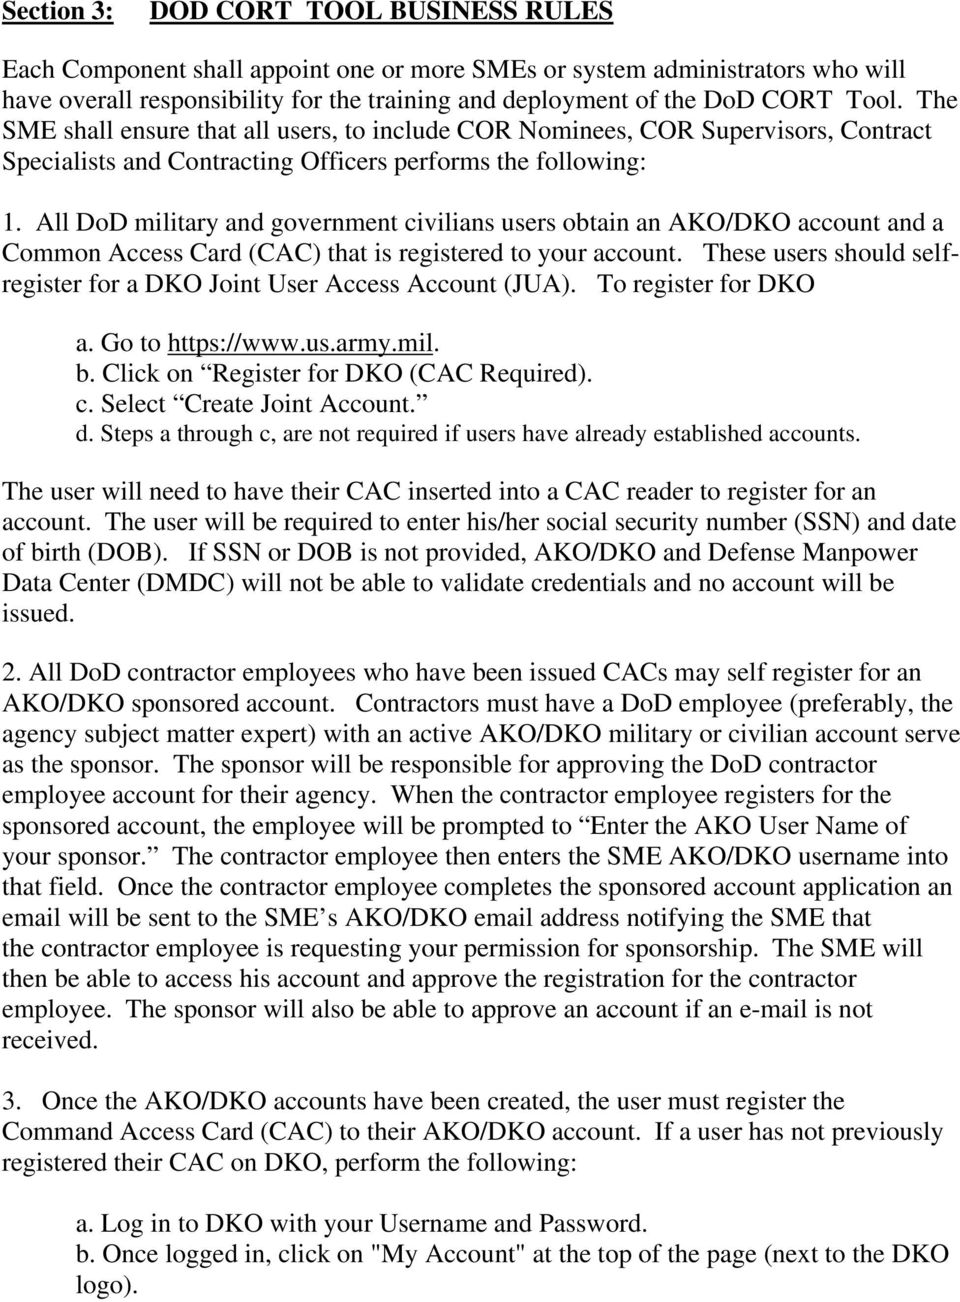 All DoD military and government civilians users obtain an AKO/DKO account and a Common Access Card (CAC) that is registered to your account.